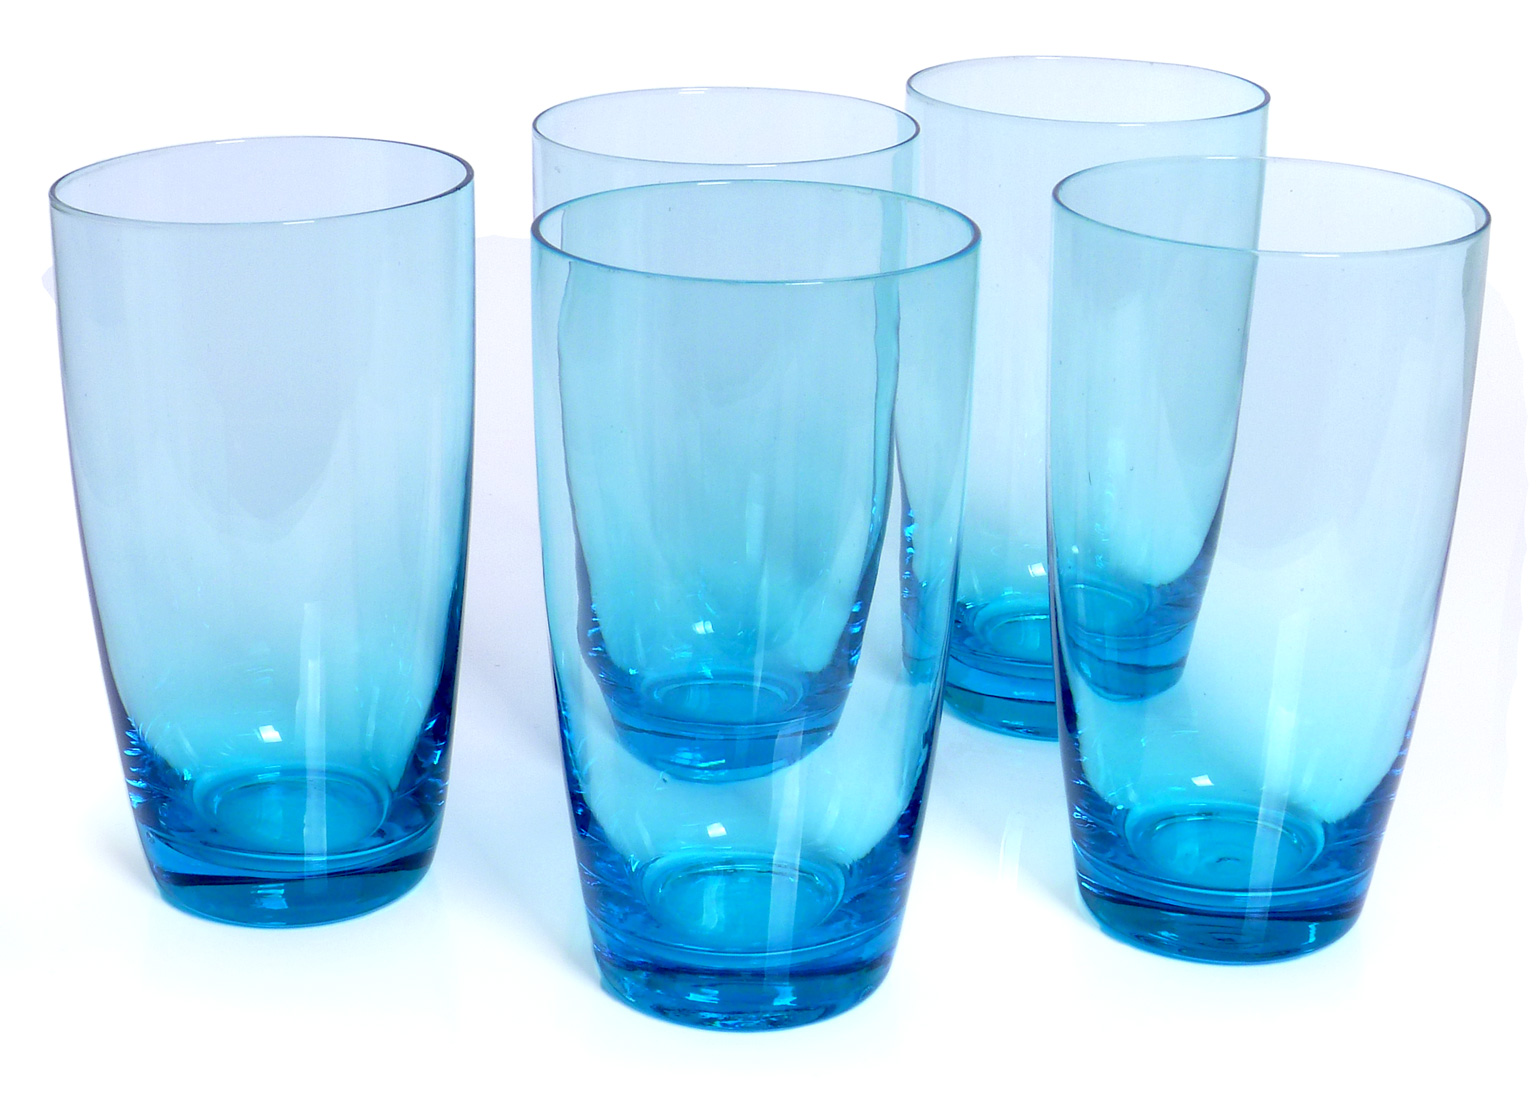 Image of Handcrafted Tall Glass Tumblers, 18-ounce, Turquoise, Set of 6